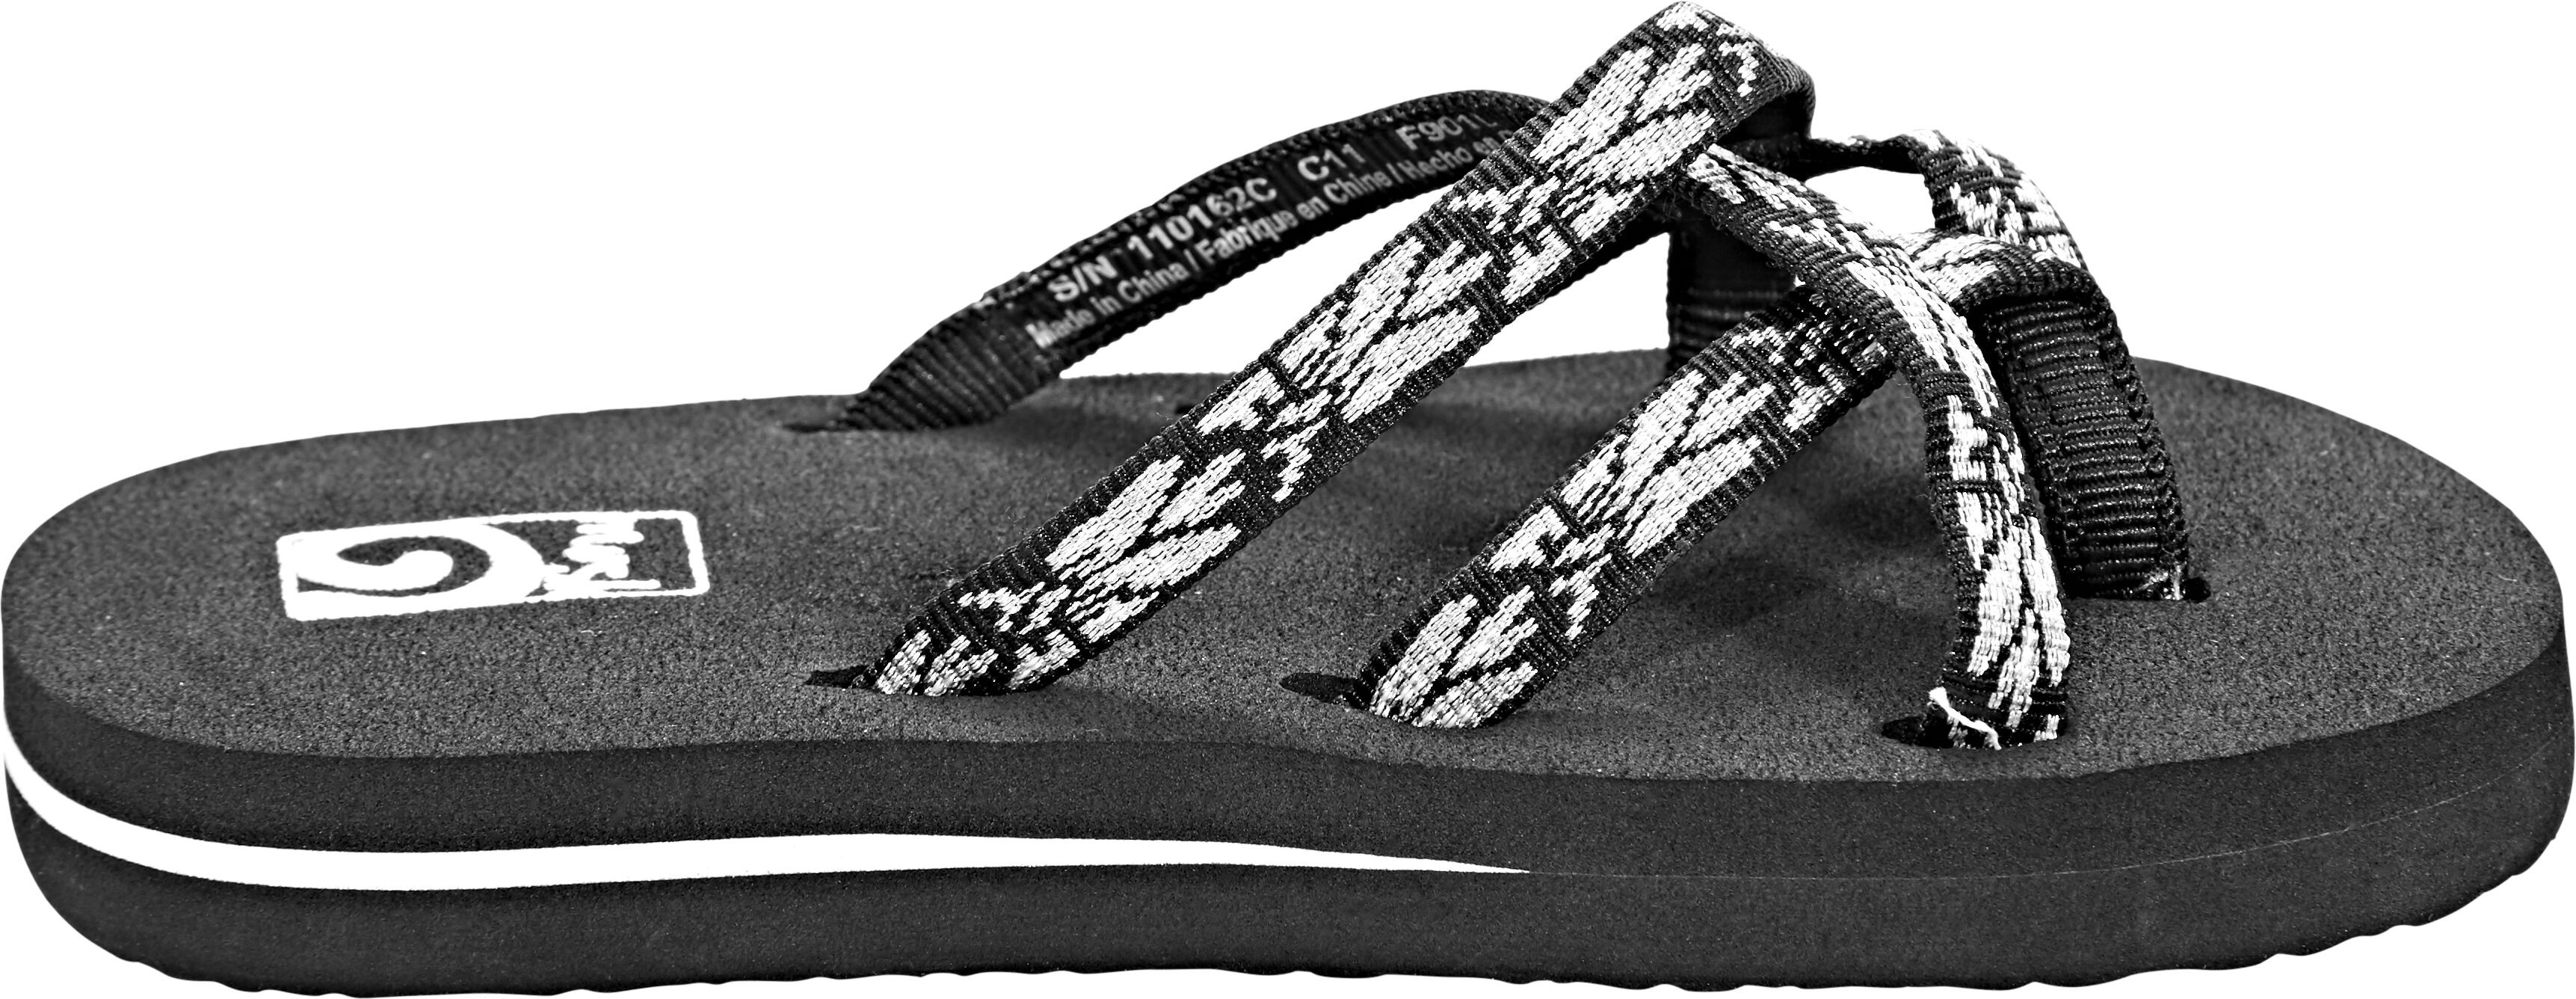 2de6a9ca1 Teva Olowahu Sandals Children Hazel Black Silver